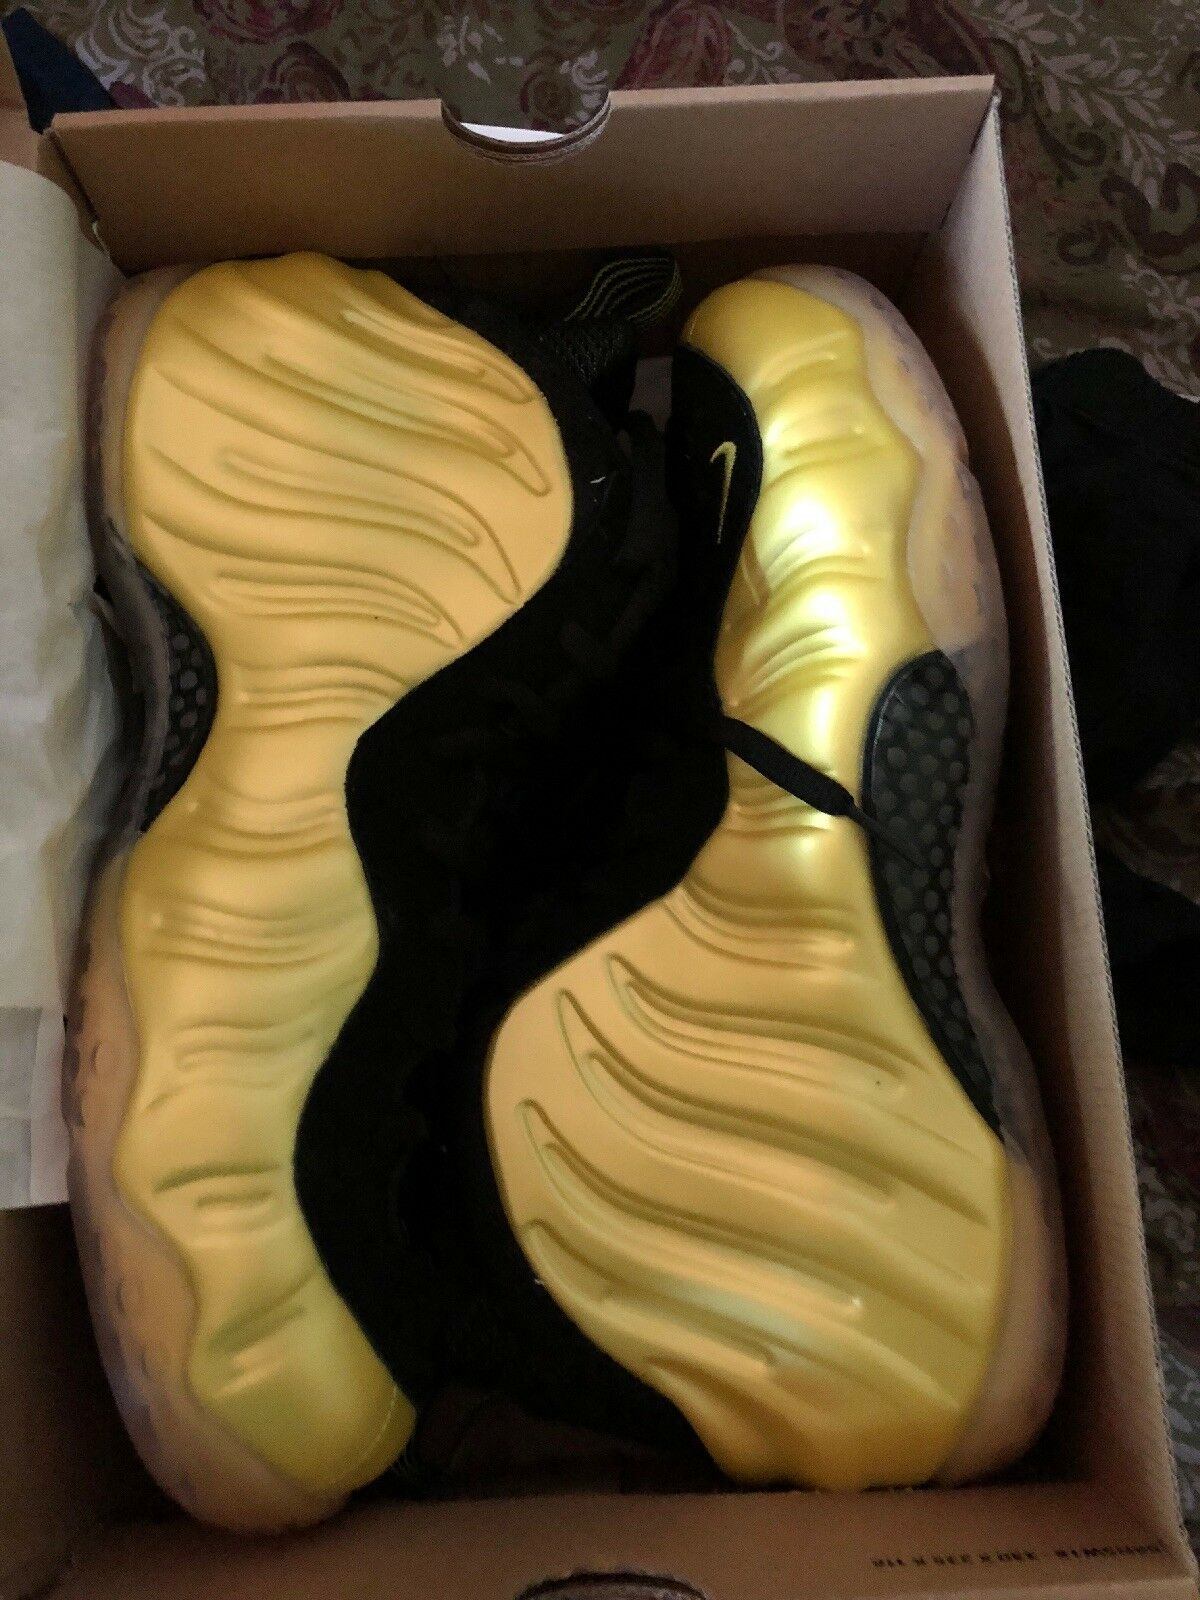 Nike Air Foamposite One Electrolime Yellow 2012 size 12